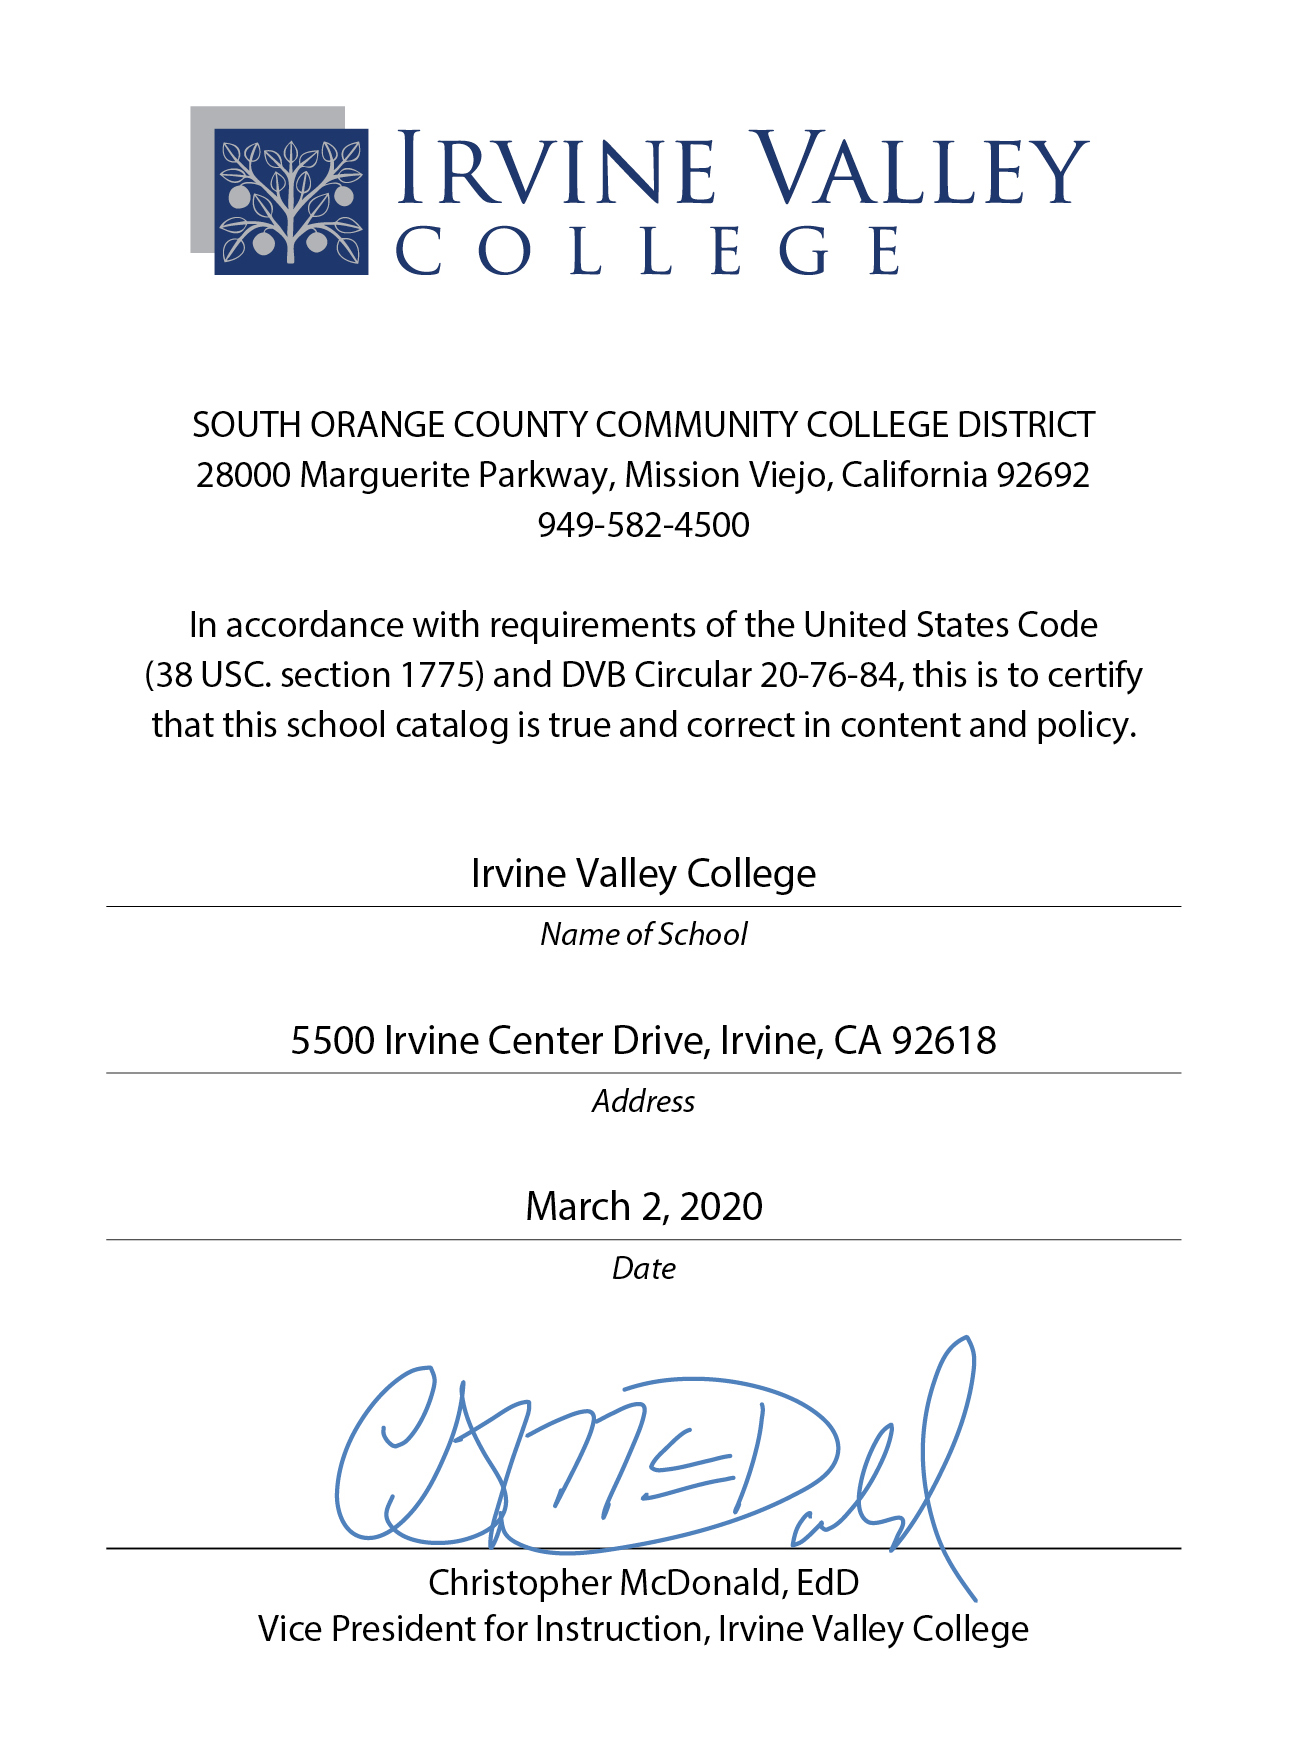 IVC Catalog Certification graphic. The image lists the IVC logo, the address of the South Orange County Community College District, and a statement that in accordance with requirements of the United States Code (38 USC. section 1775) and DVC Circular 20-76-84, this is to certify that this school catalog is true and correct in content and policy. It is signed by IVC Vice President for Instruction Christopher McDonald, PhD, and is dated April 3, 2017.